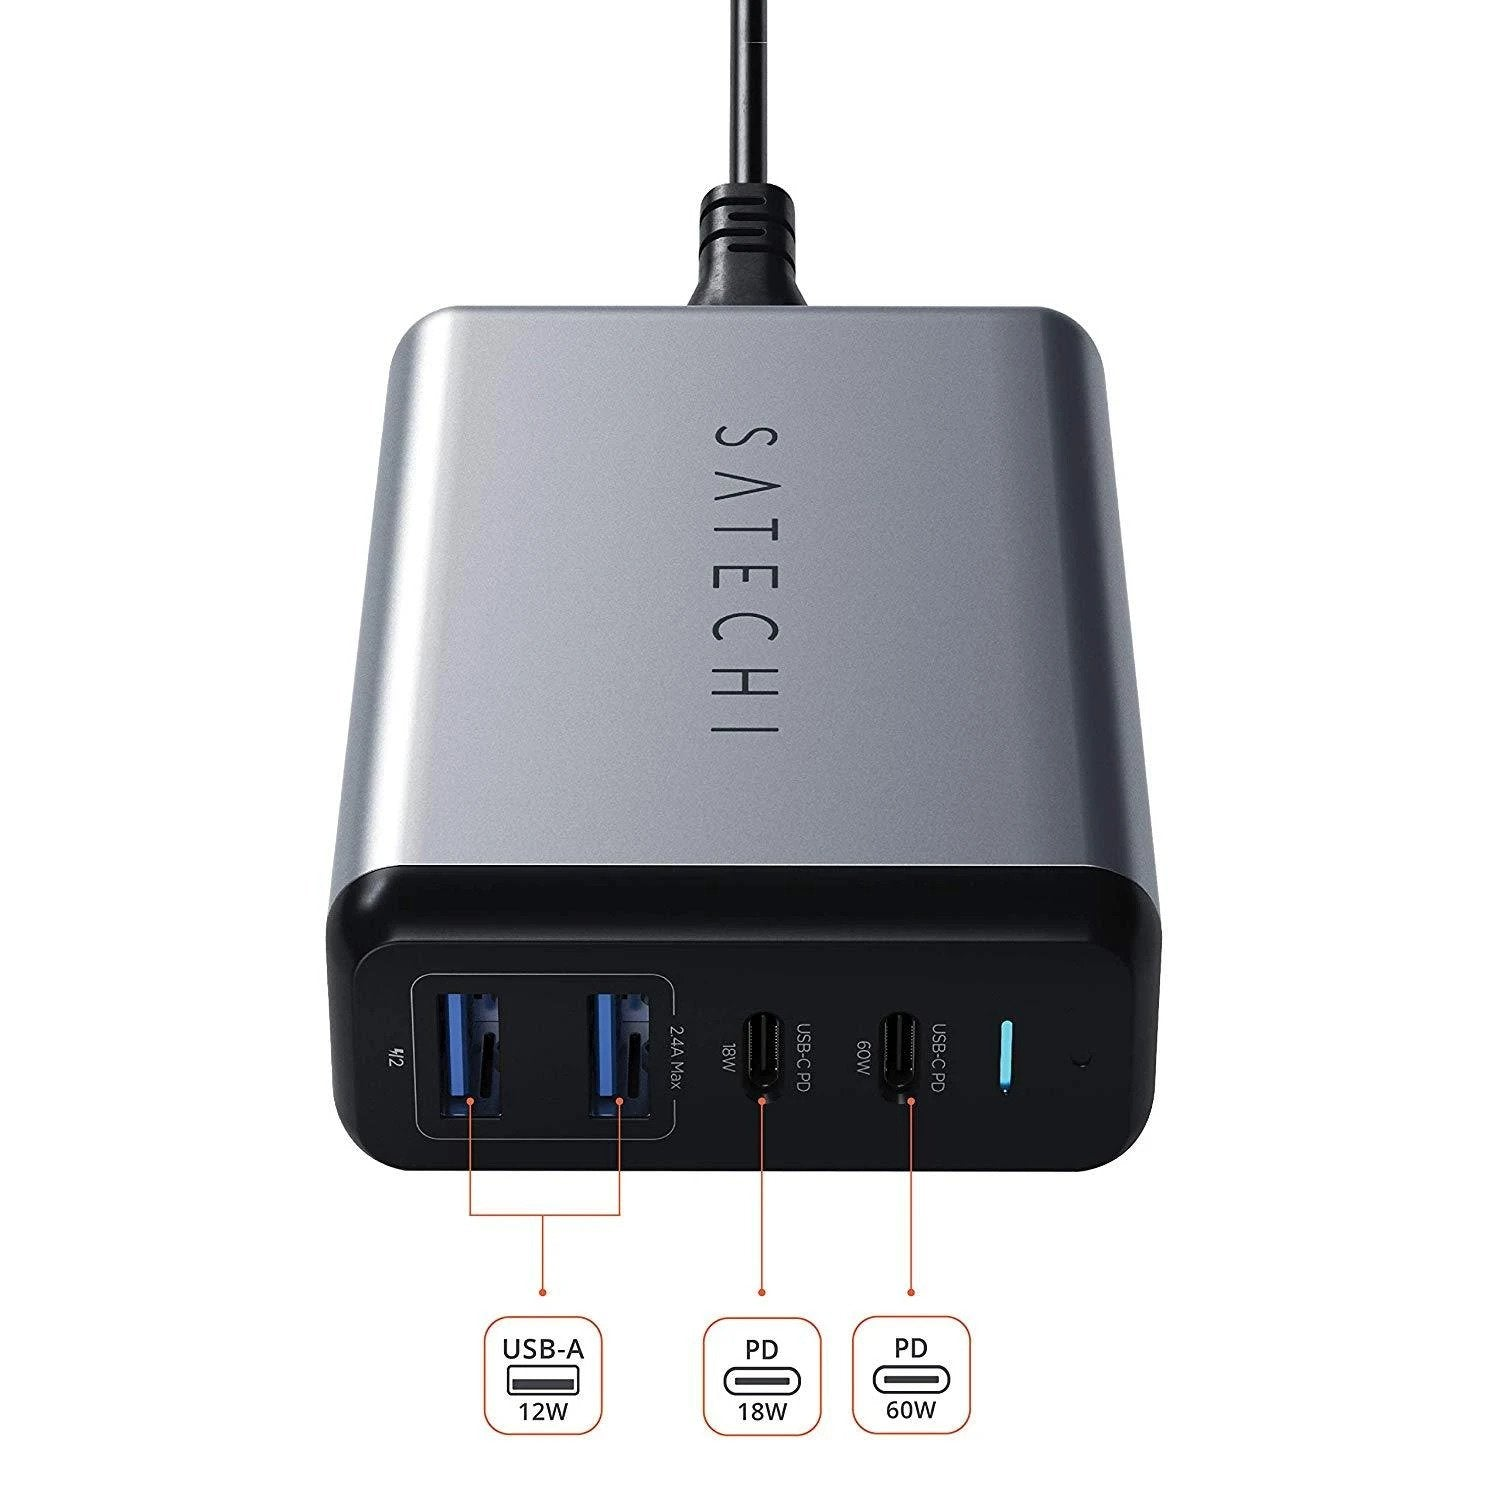 SATECHI - TRAVEL CHARGER - 4 PORTS - 75W PD (2 X USBC - 2 USBA) - SPACE GRAY